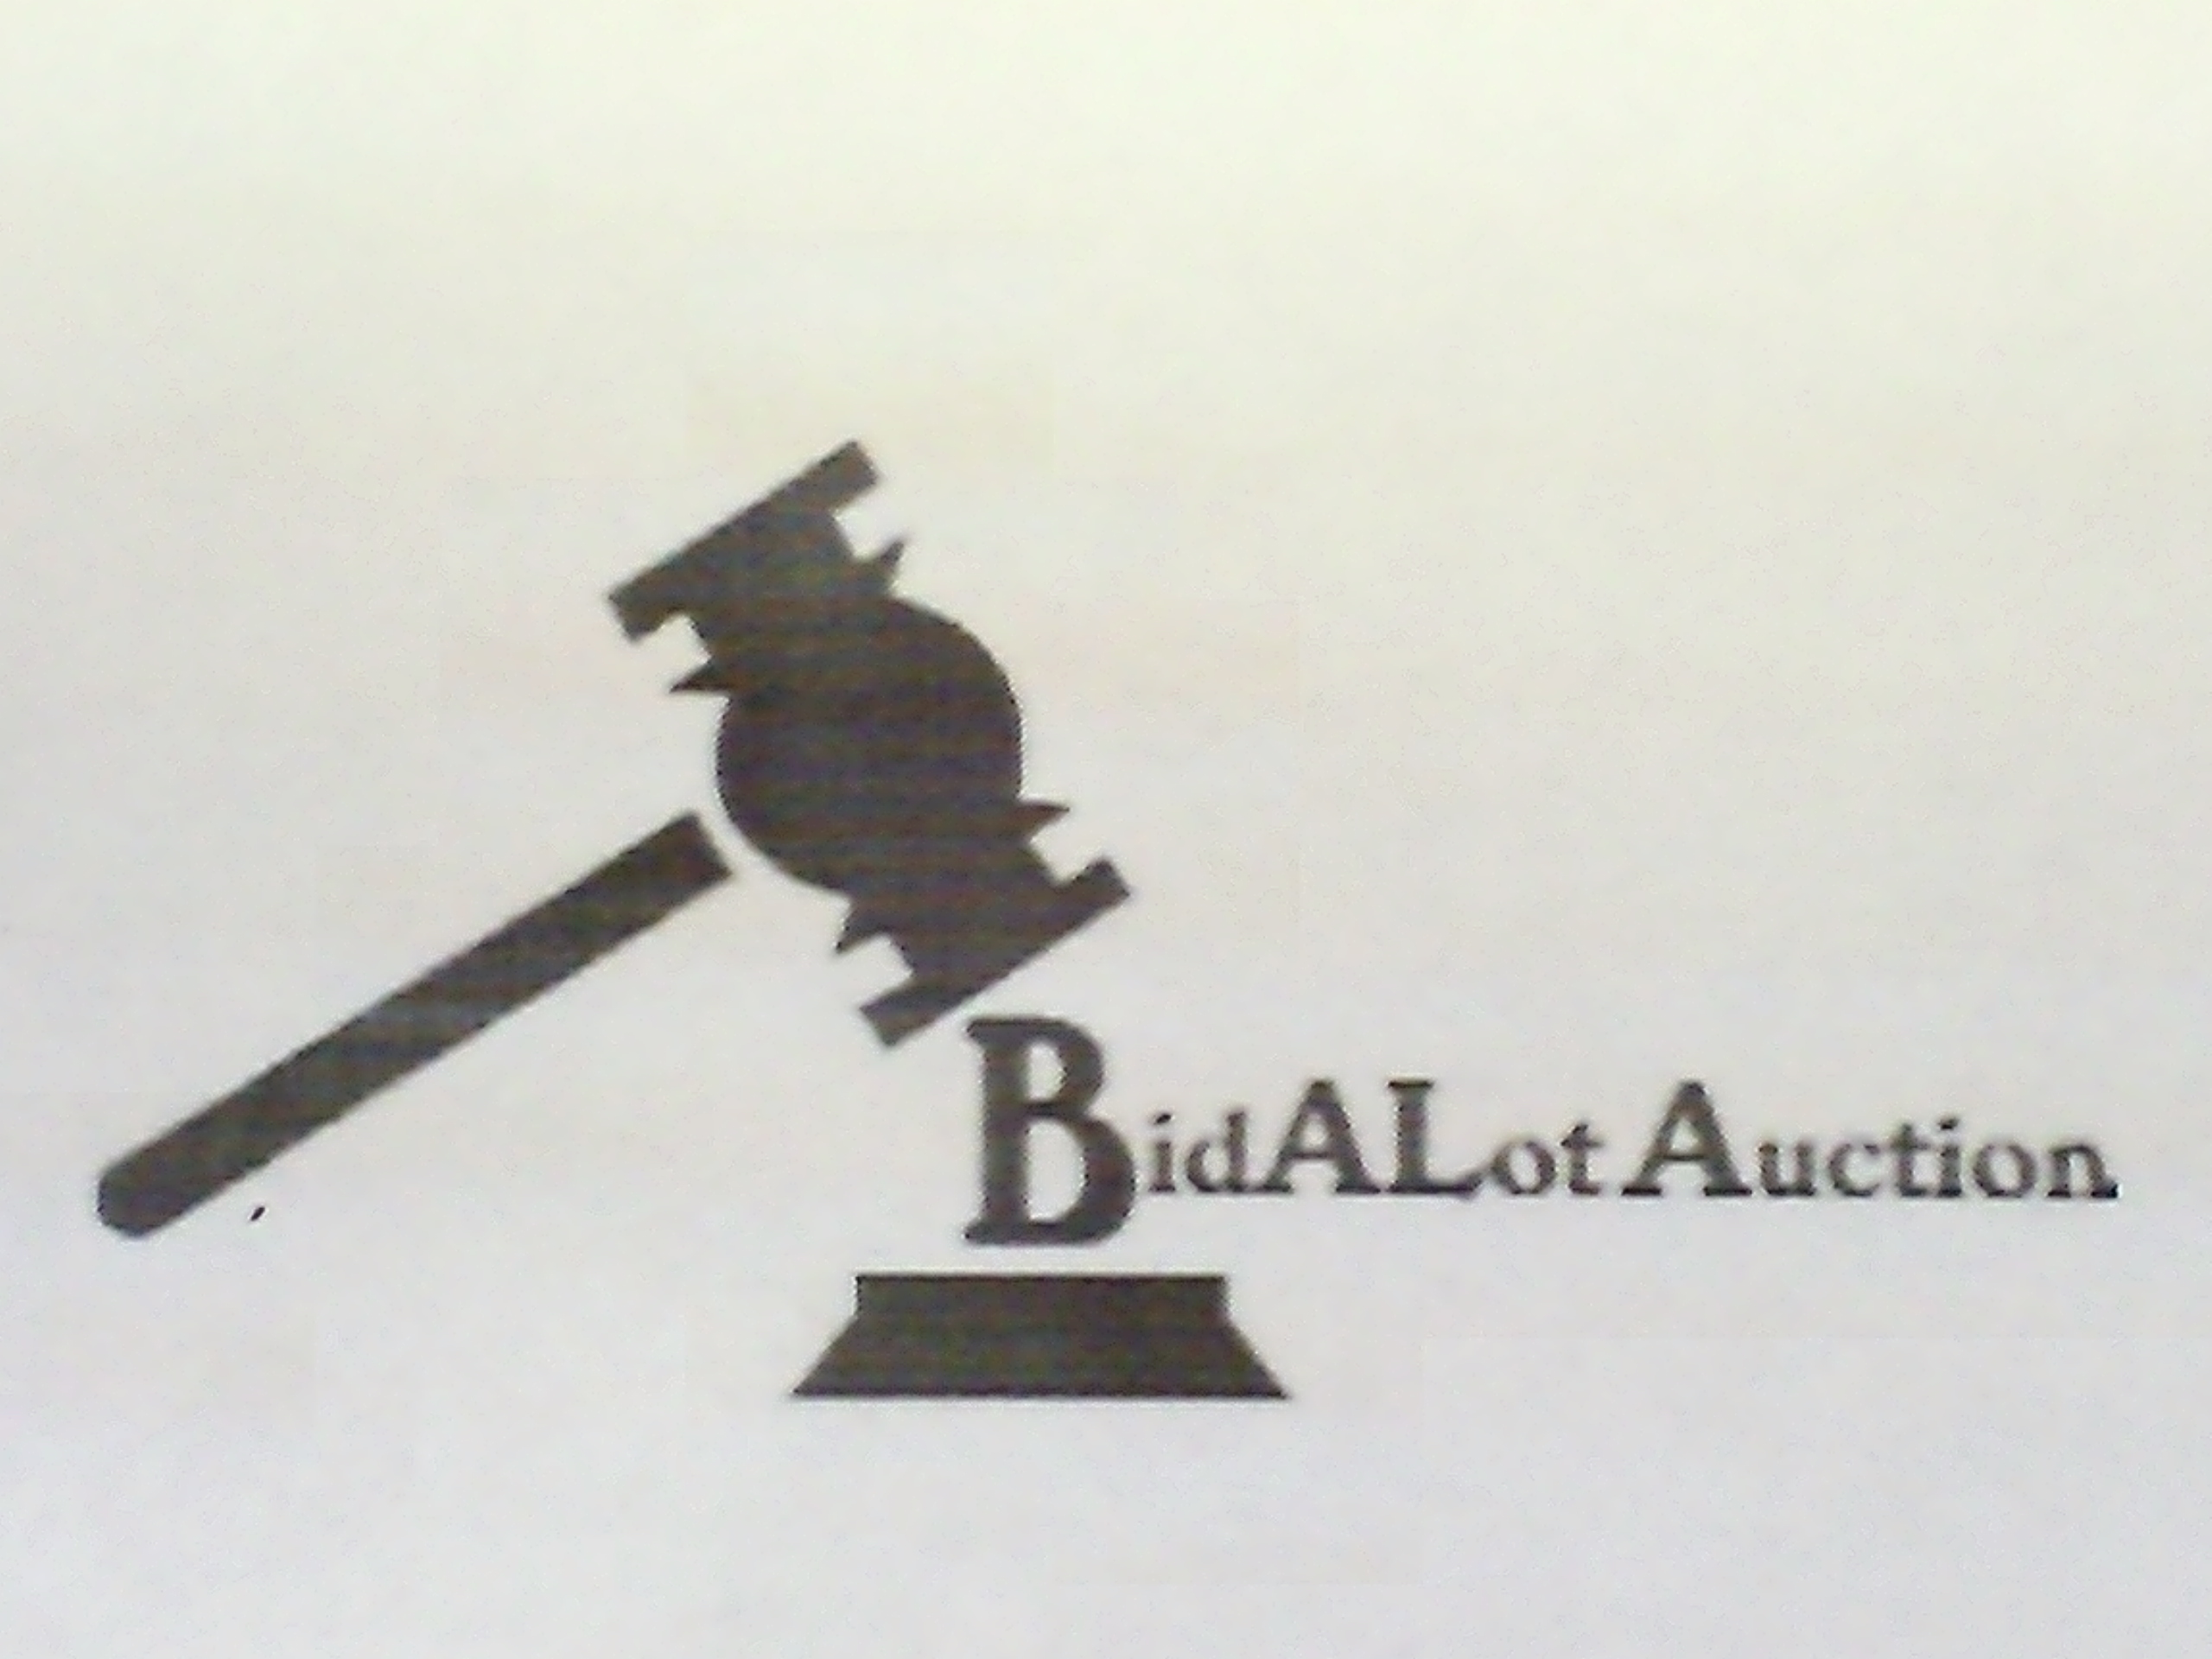 BIDALOT COIN AUCTION ONLINE MONDAY SEPT. 11TH AT 6:30 PM CST